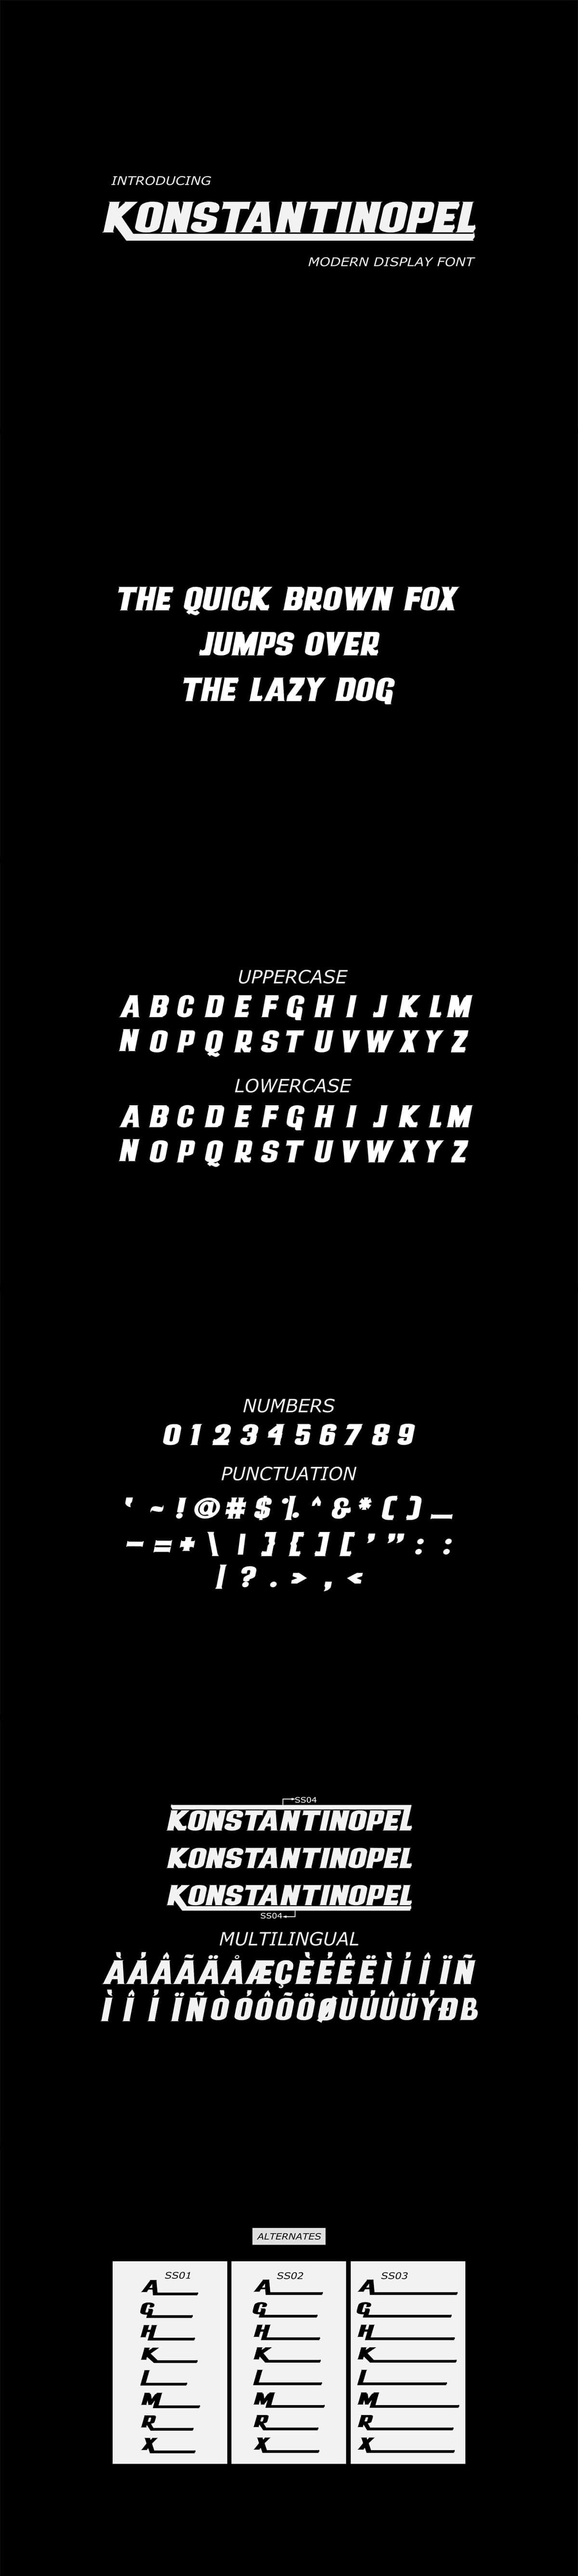 Free Konstantinopel Display Font